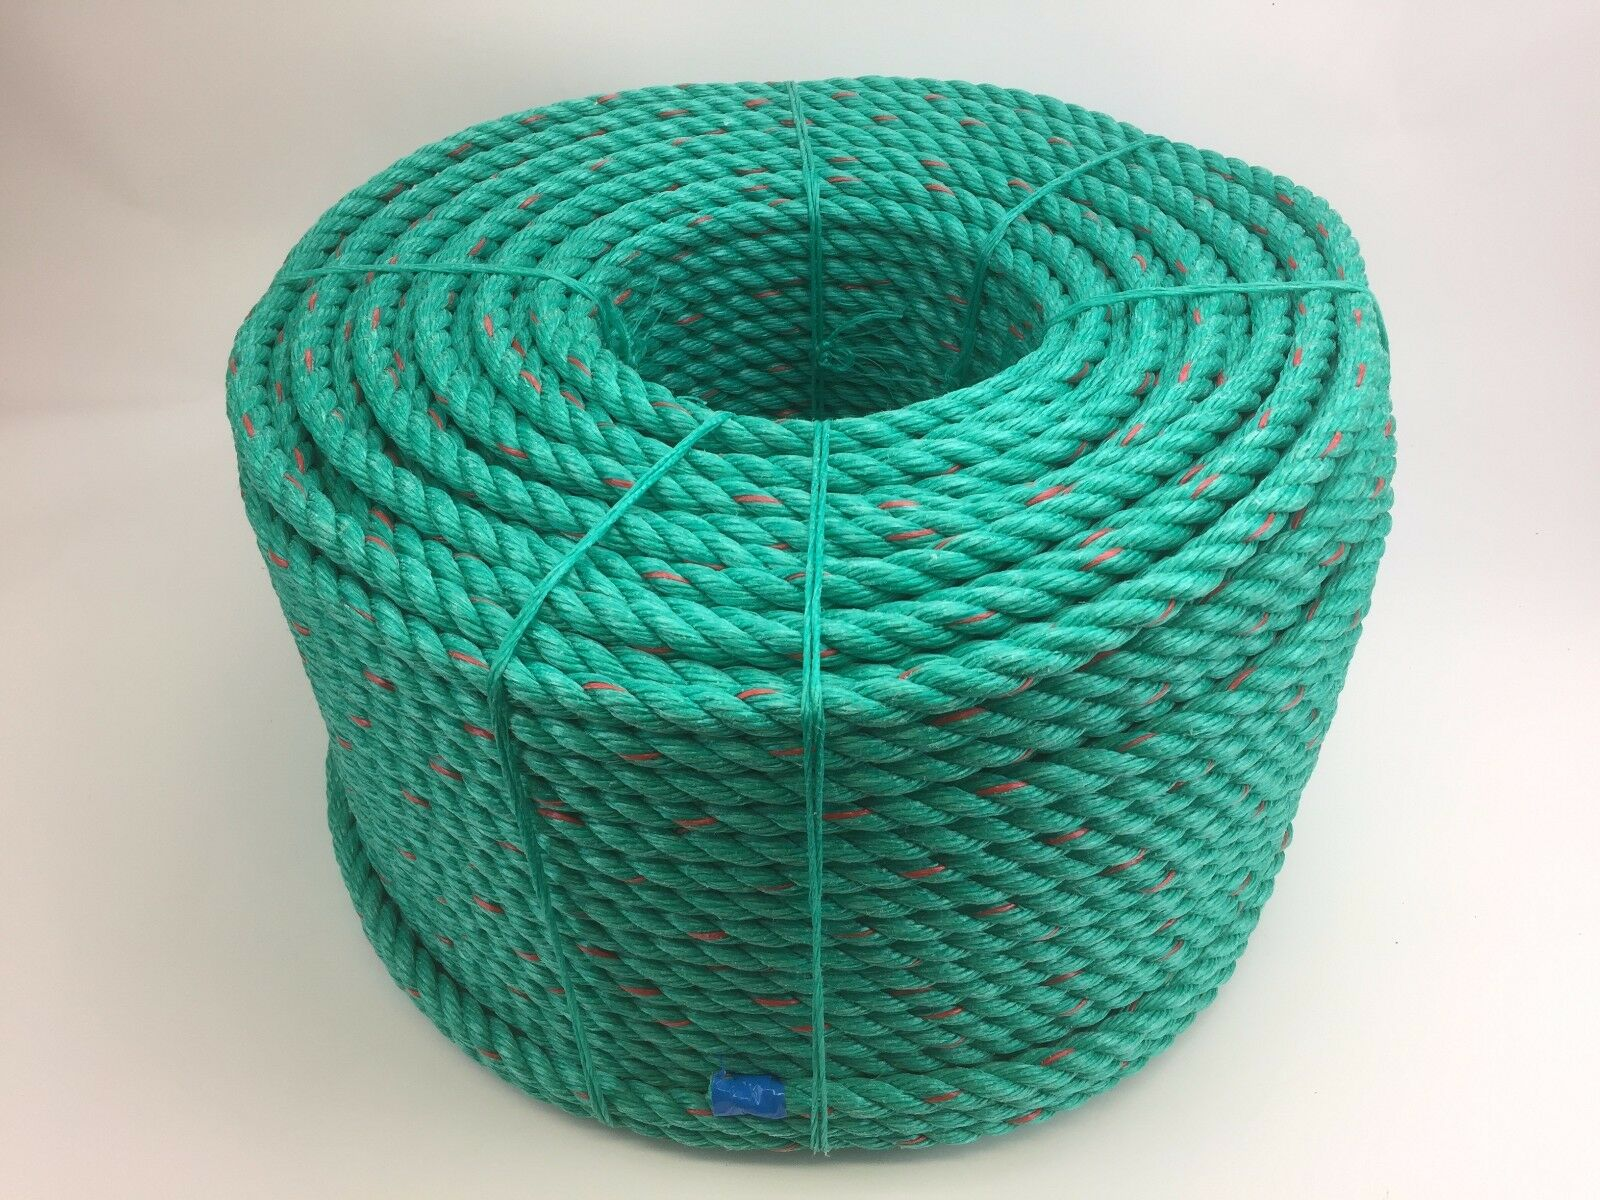 16mm Polysteel Rope x 50 Metres,  Lowering, Arborist, Rigging, Tree Surgery Rope  save 50%-75%off